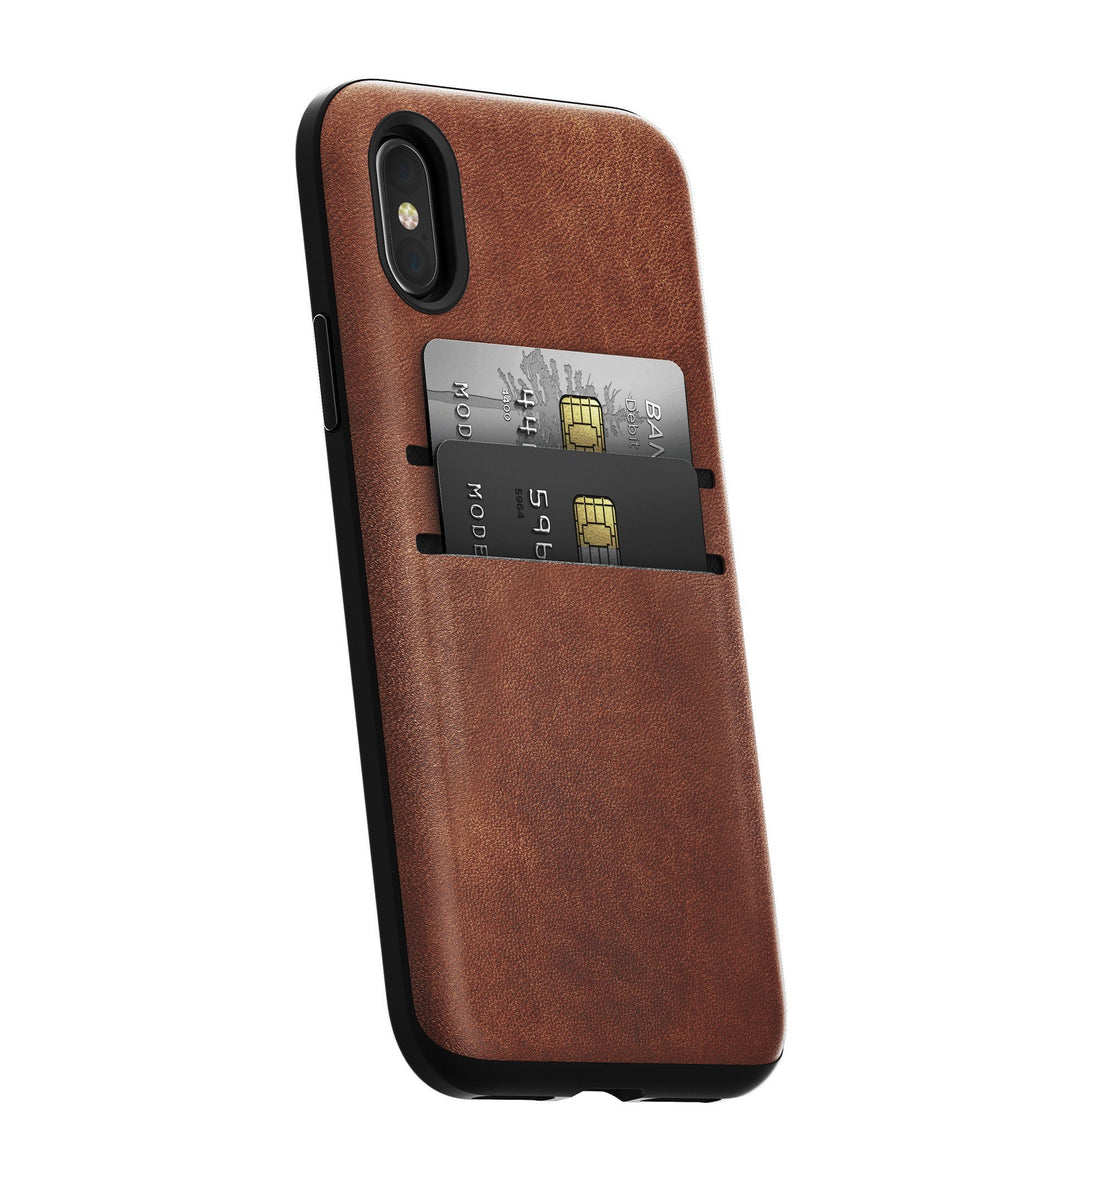 Nomad Rugged Leather Wallet Case - Rustic Brown - iPhone X - Carry Essentials - Iron and Resin